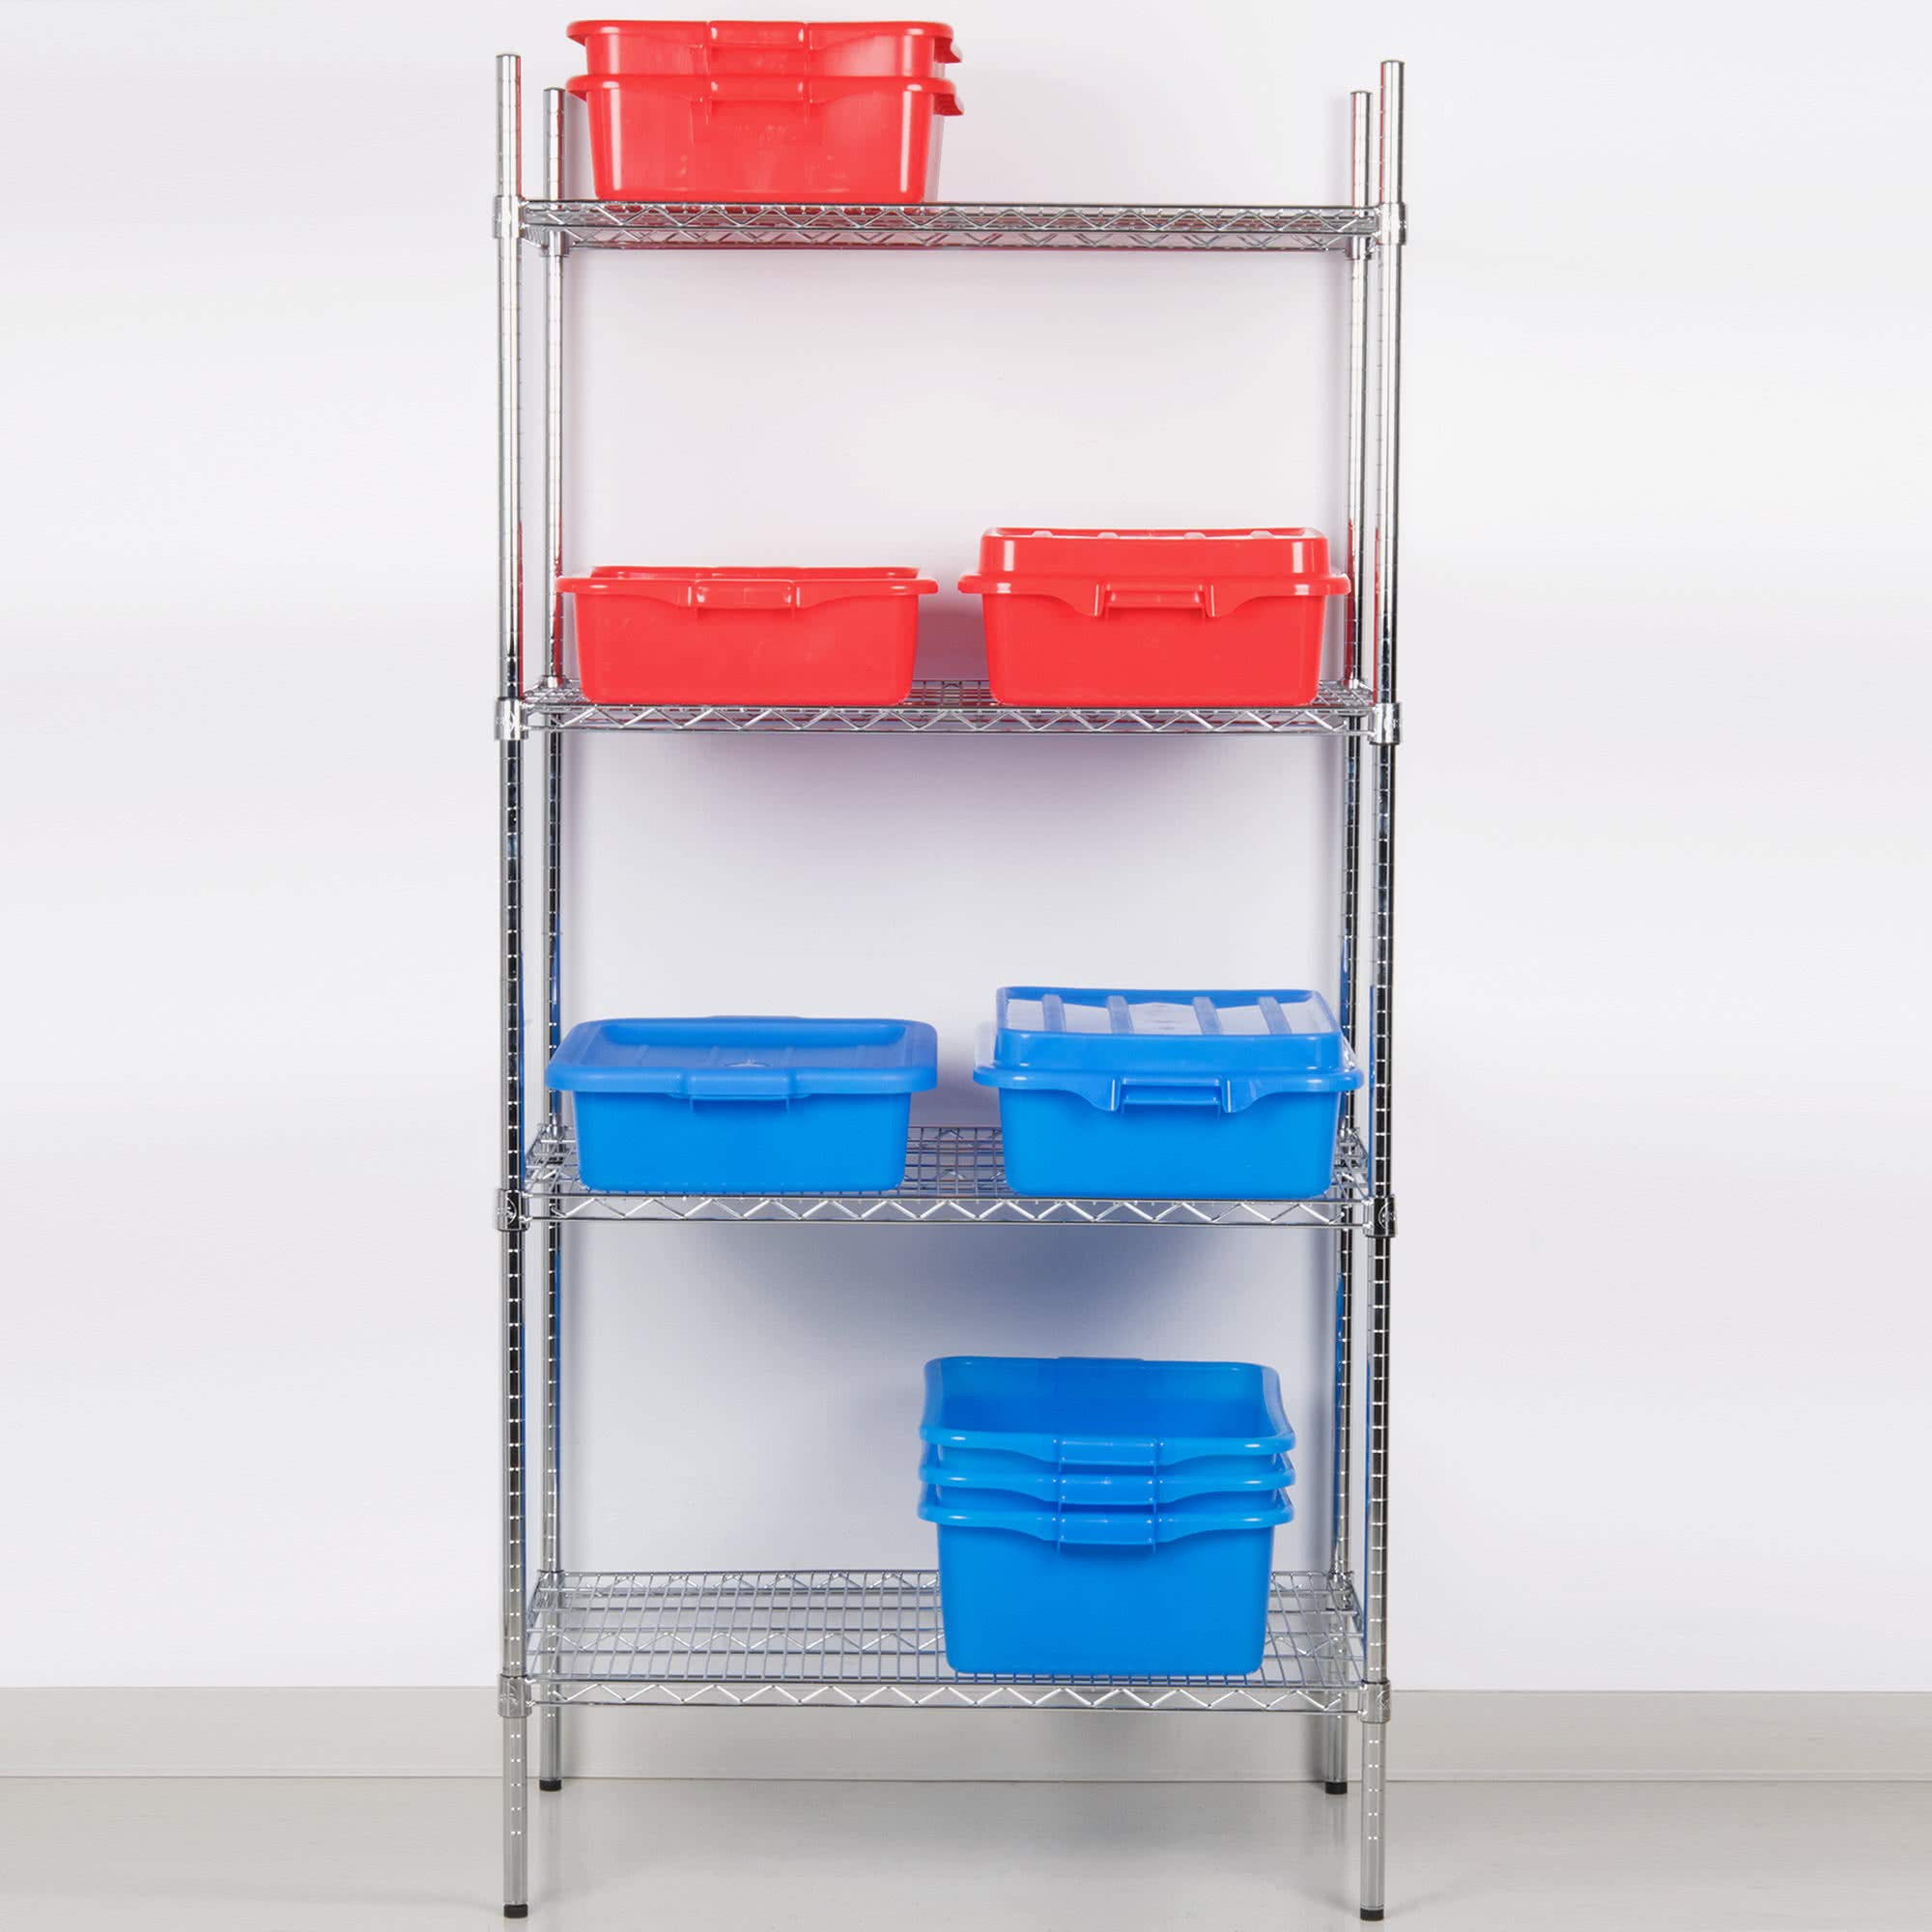 L and J Commercial Chrome Wire Shelving 18 x 48 - NSF (2 Shelves) by L and J